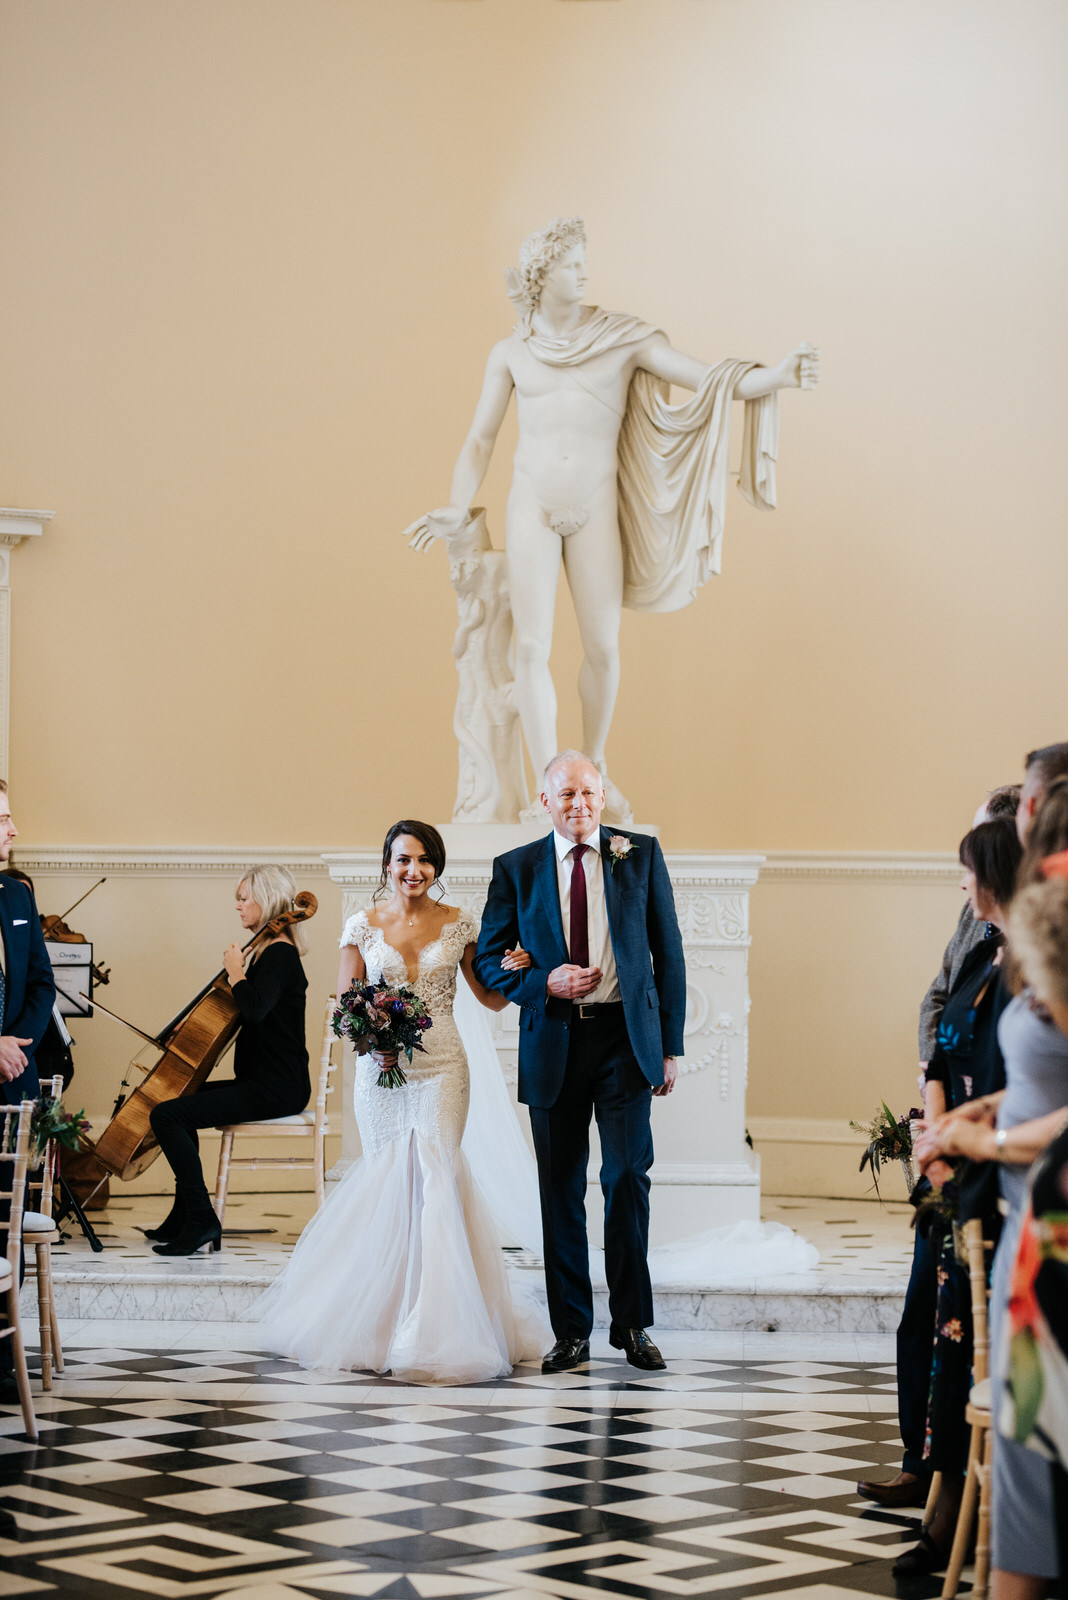 Bride and step-dad walk down the aisle as people smile